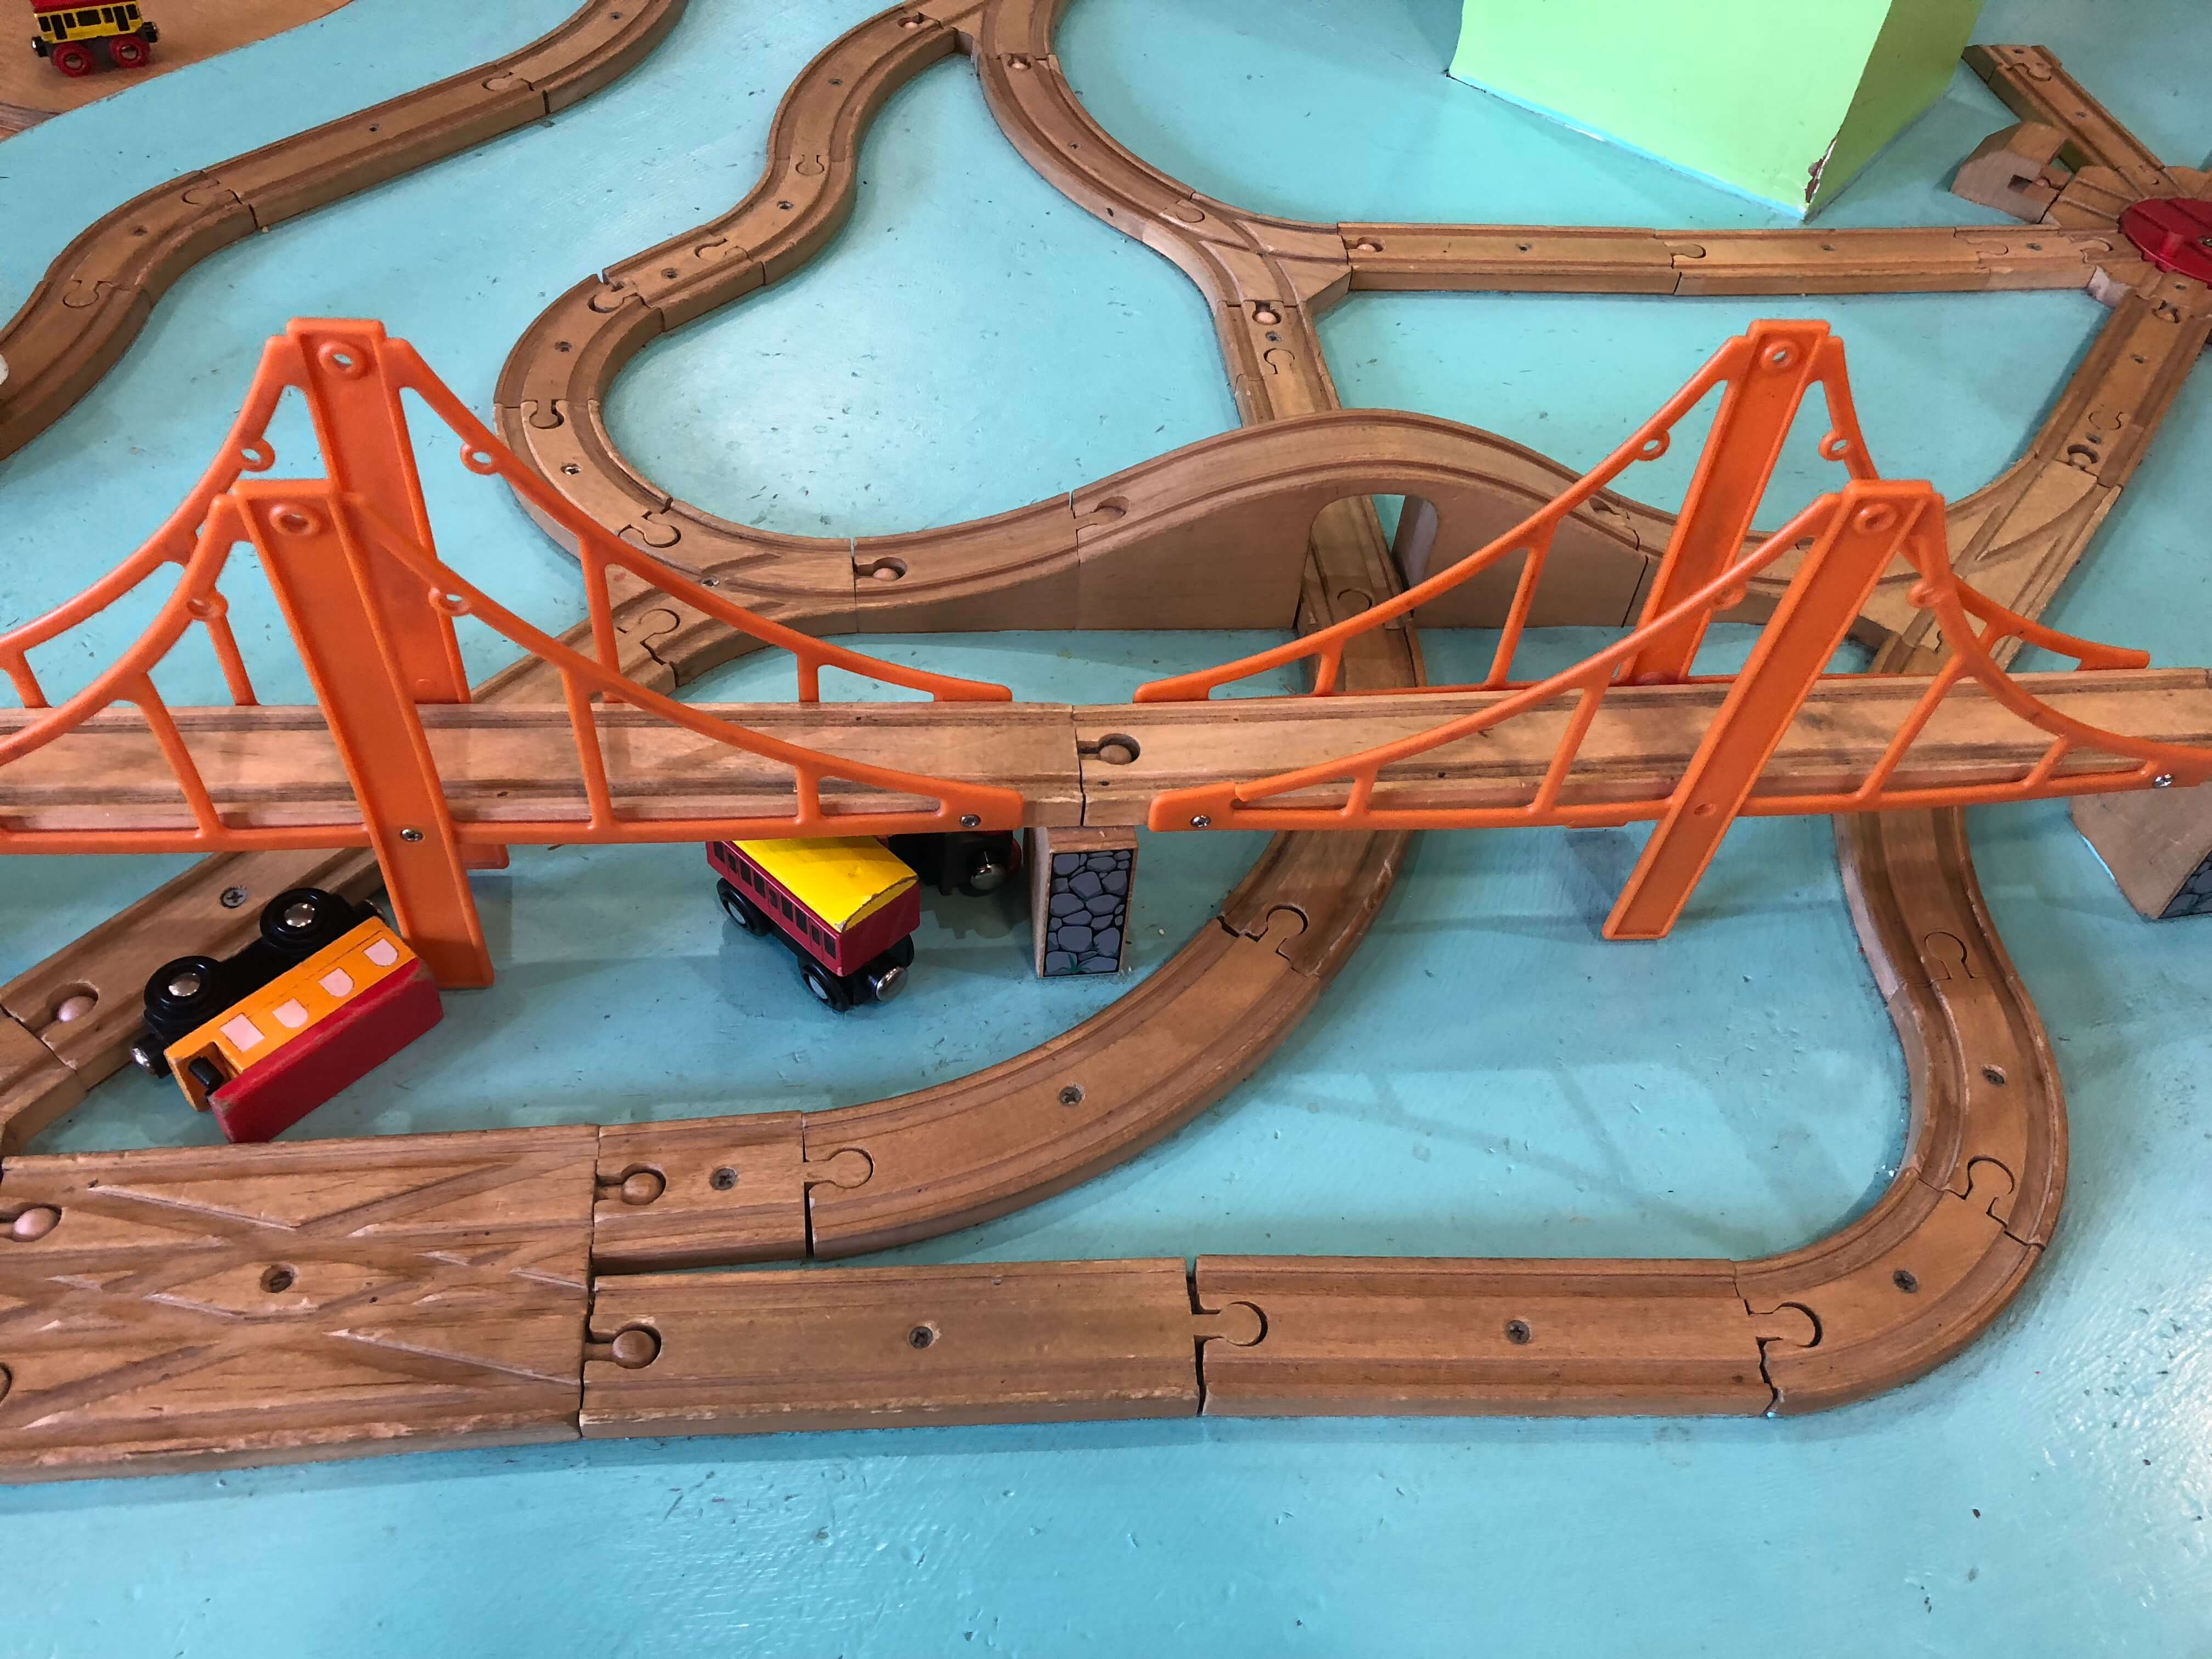 trains at the Mid-Hudson Children's Museum